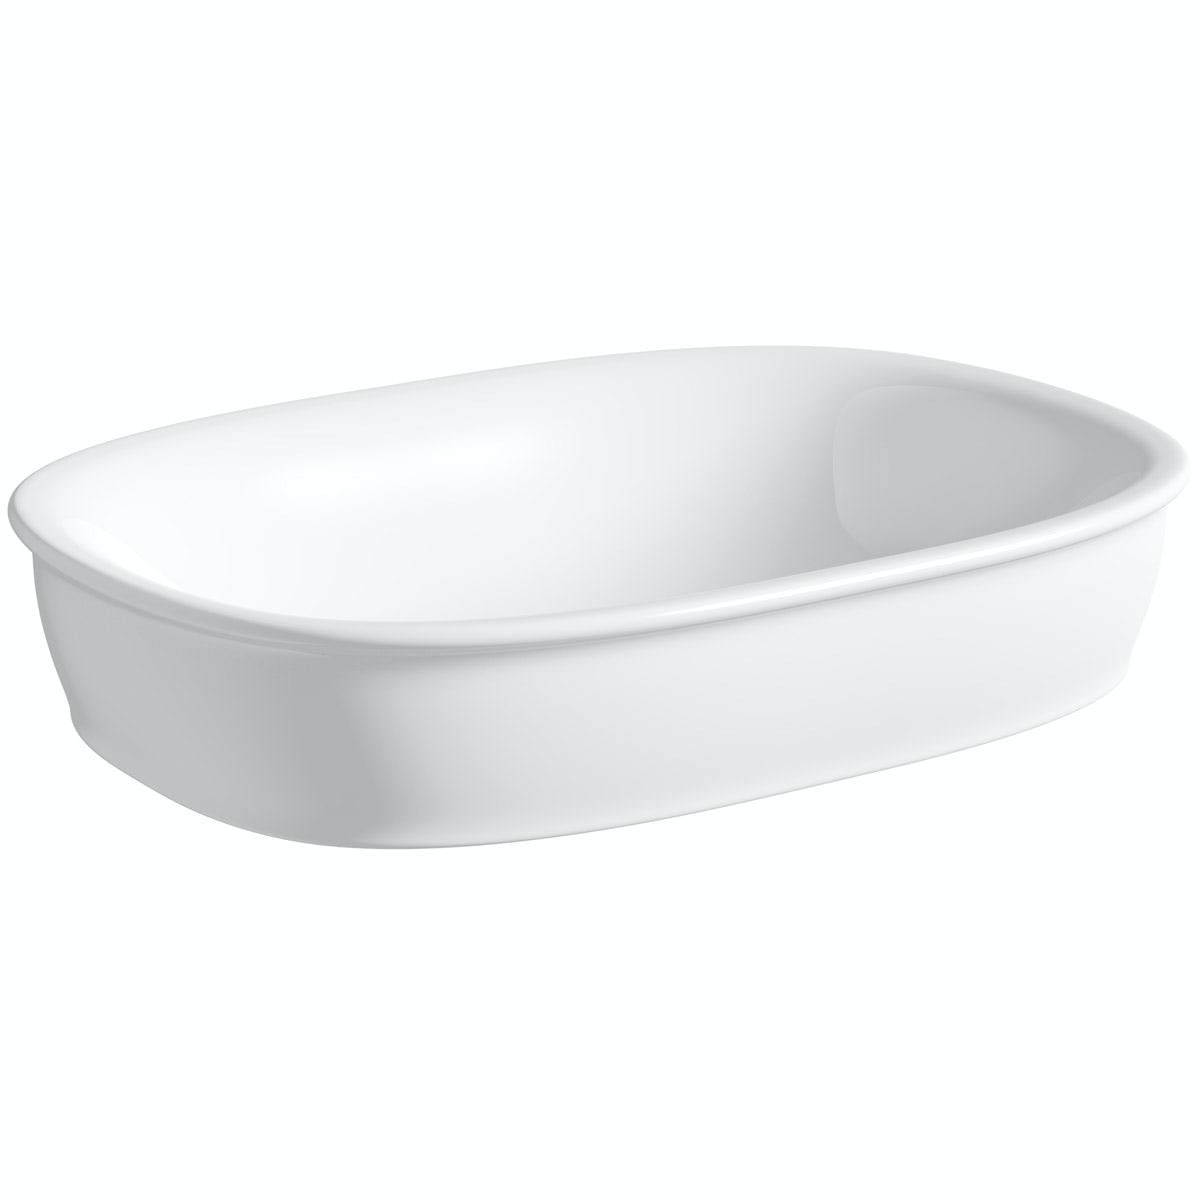 The Bath Co. Beaumont countertop basin 520mm